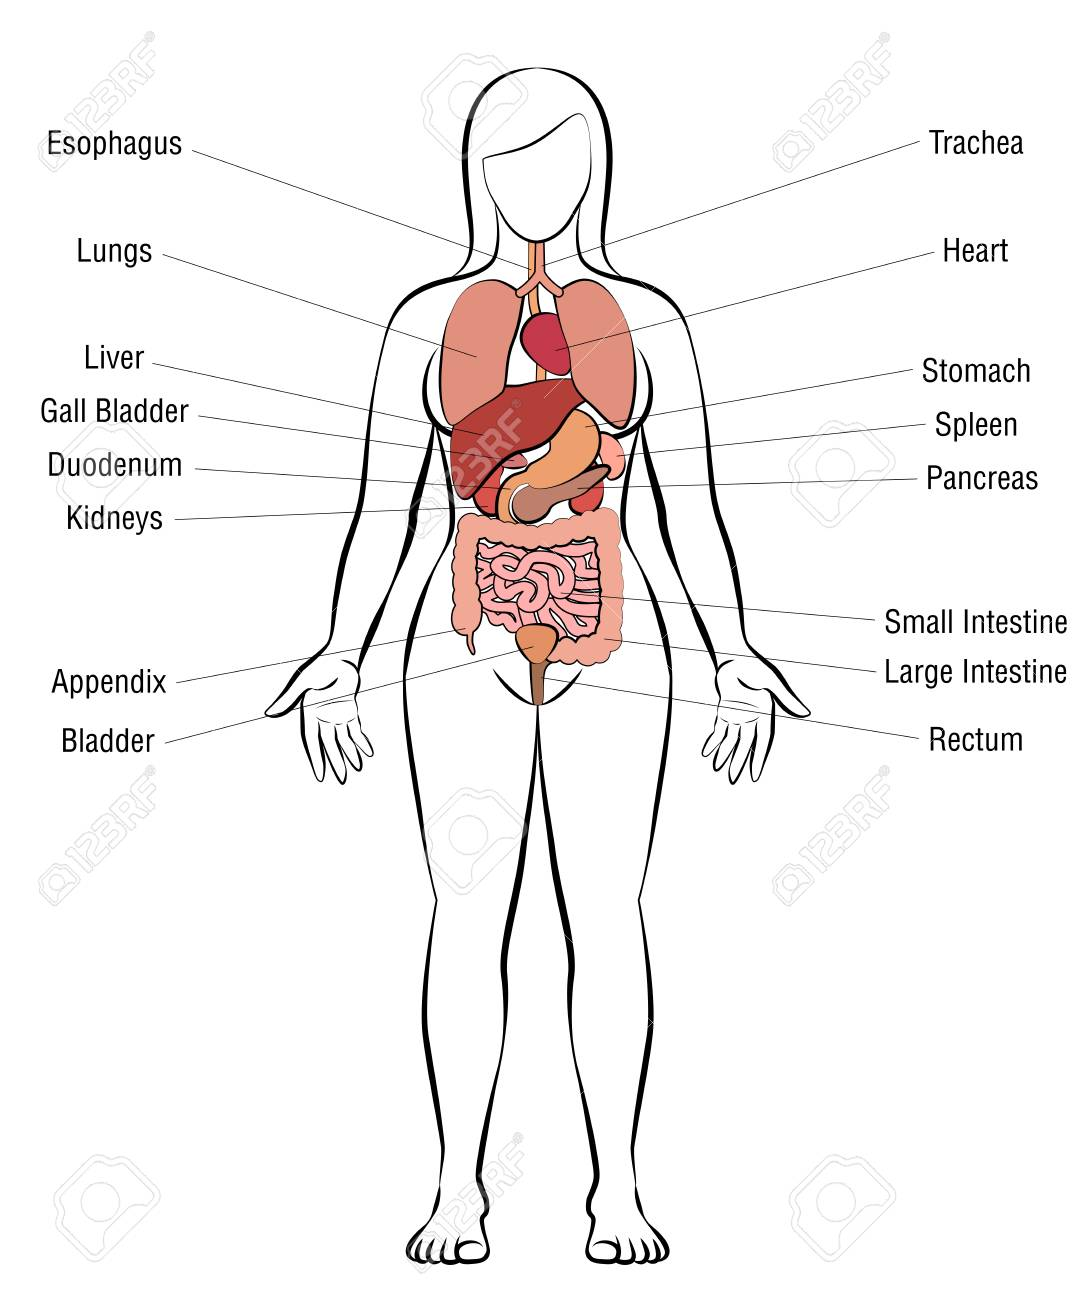 Internal organs, female body - schematic human anatomy illustration - isolated vector on white background. - 105481148